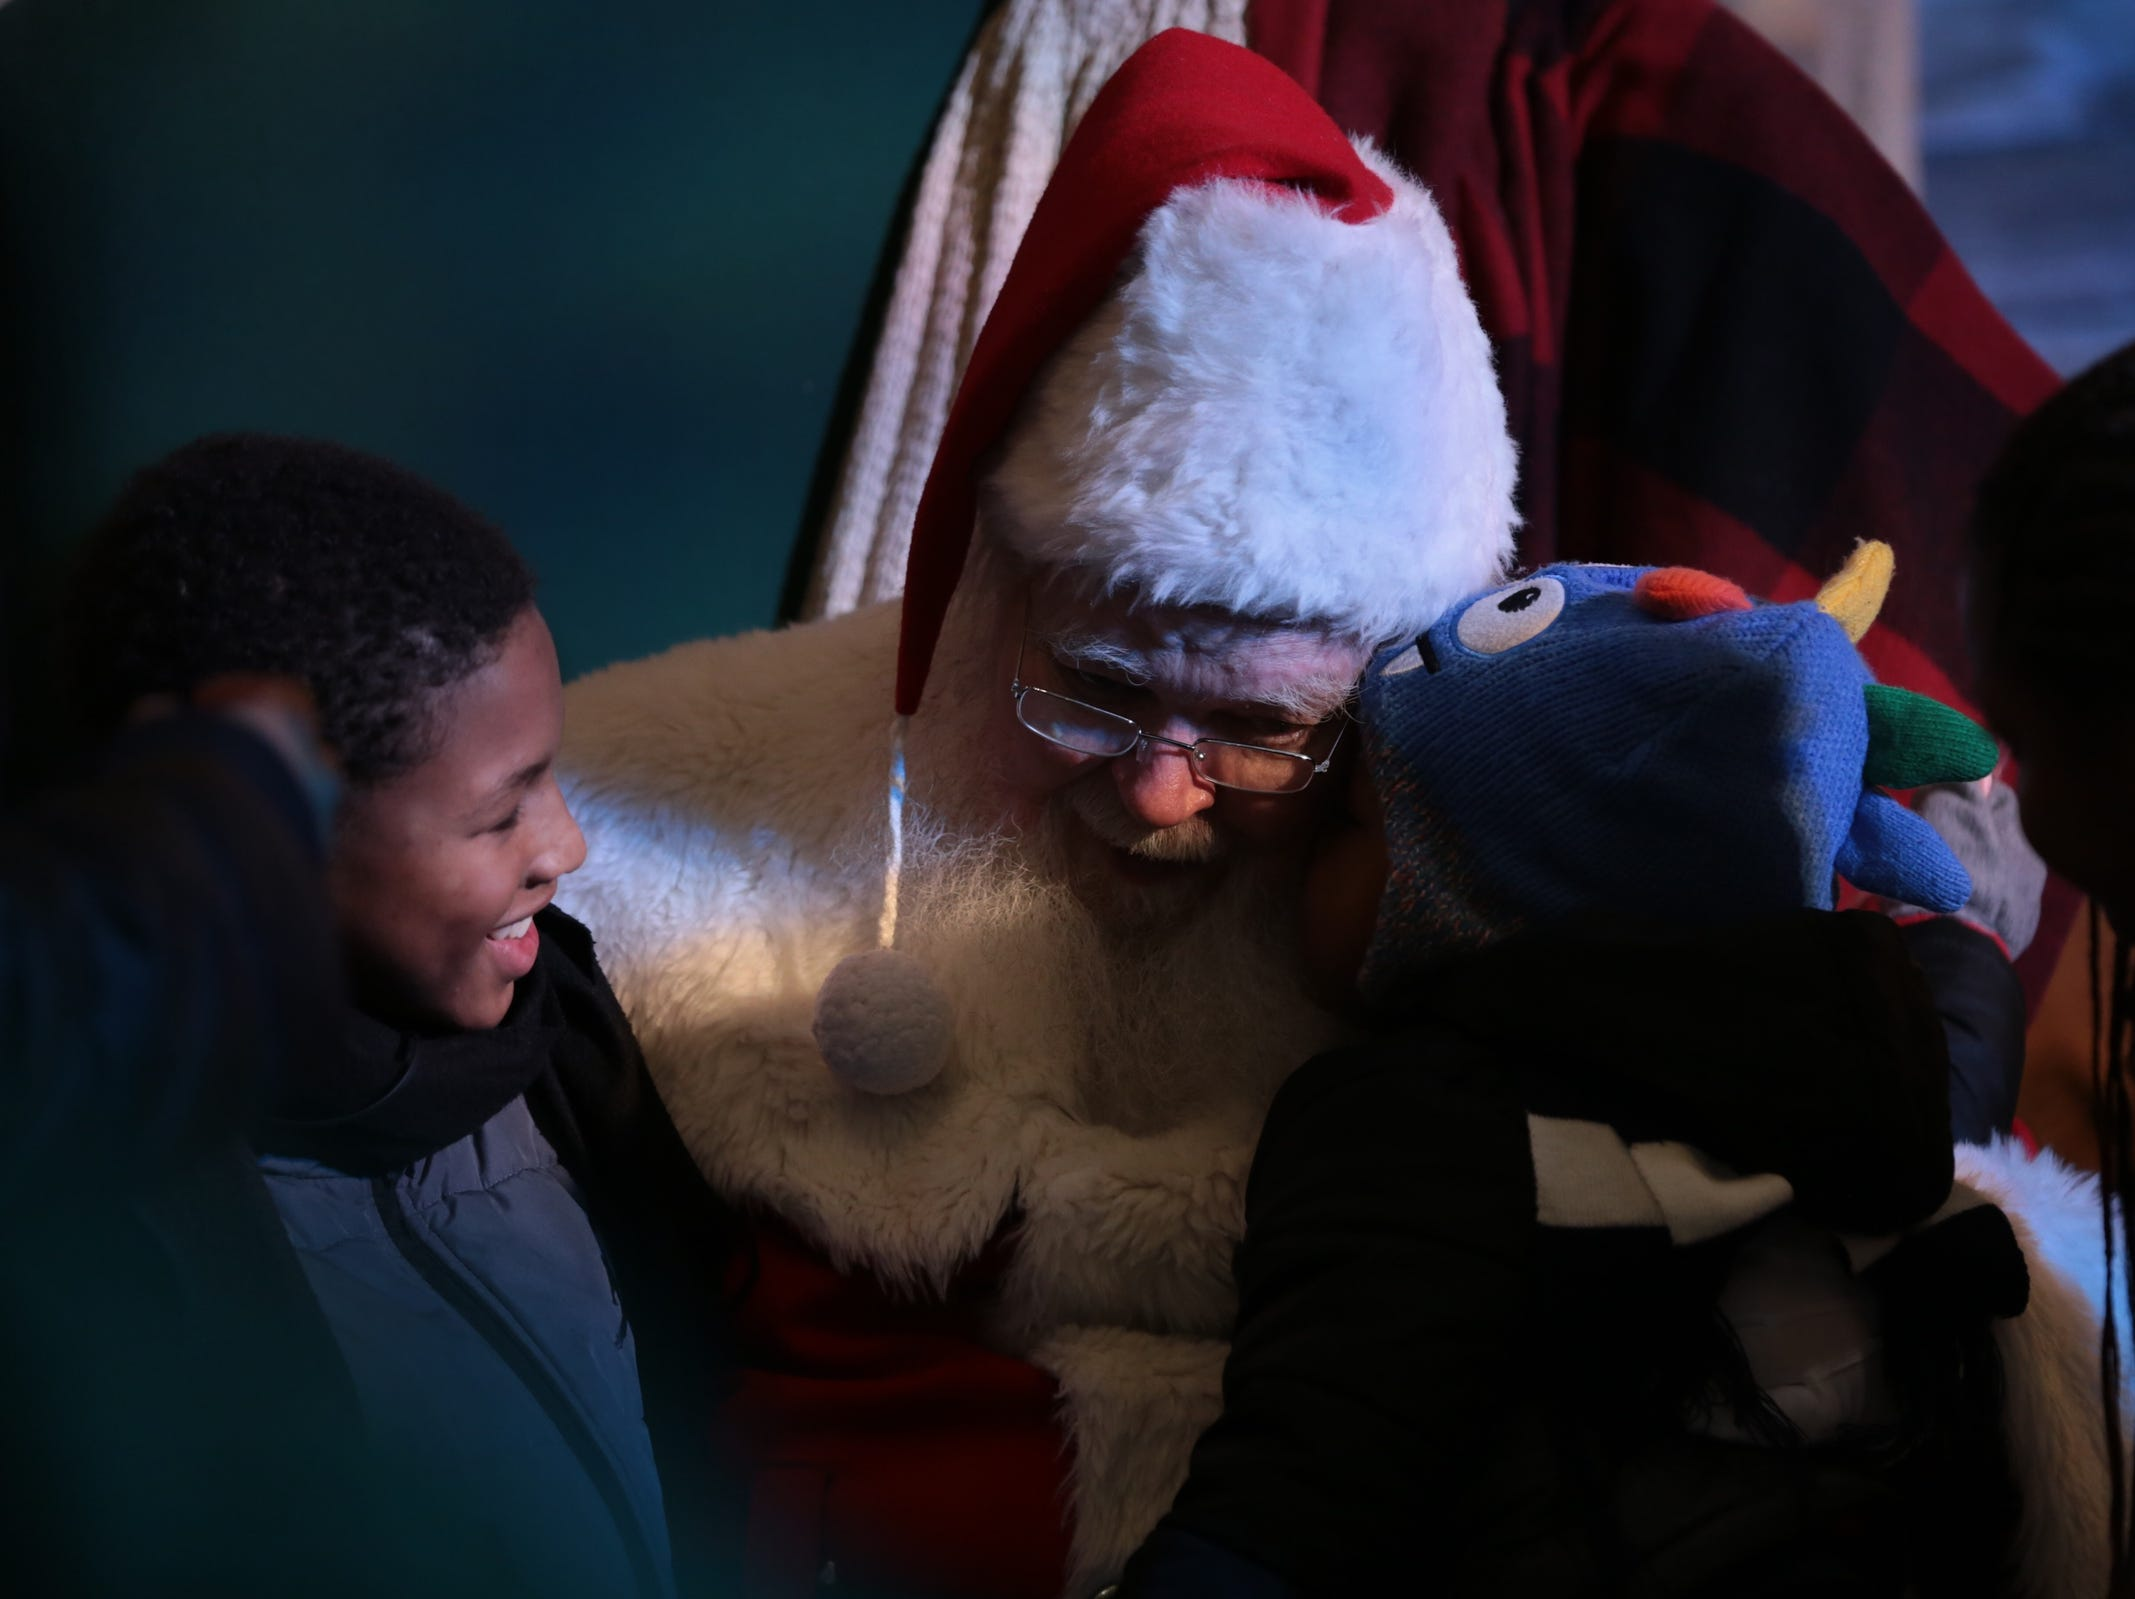 Cameron Hurst of Eastpointe whispers to Santa Claus while sitting with his brother Christian Hurst of Eastpointe inside One Campus Martius during the annual tree lighting event at Campus Martius Park in downtown Detroit on Friday, November 16, 2018.